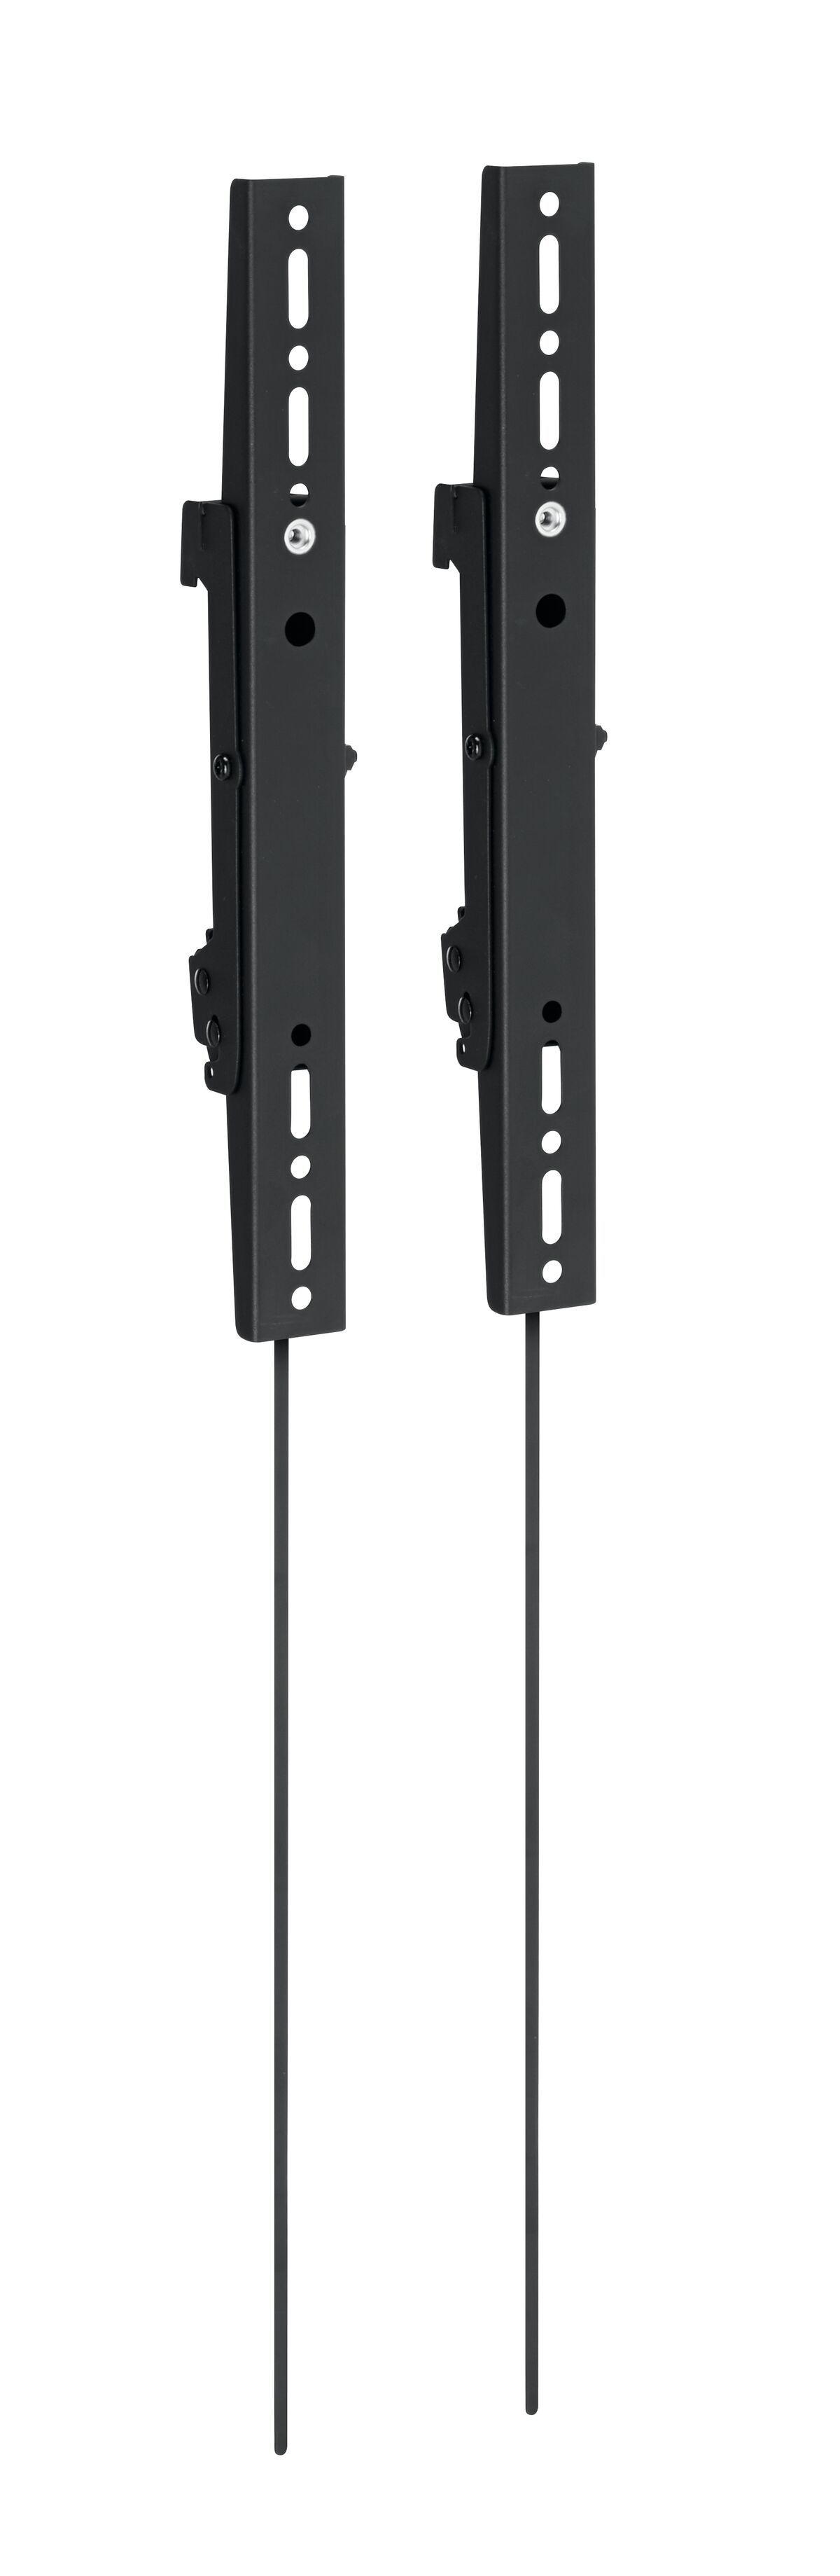 Vogel's PFS 3204 Display-Adapterstrips - Side view